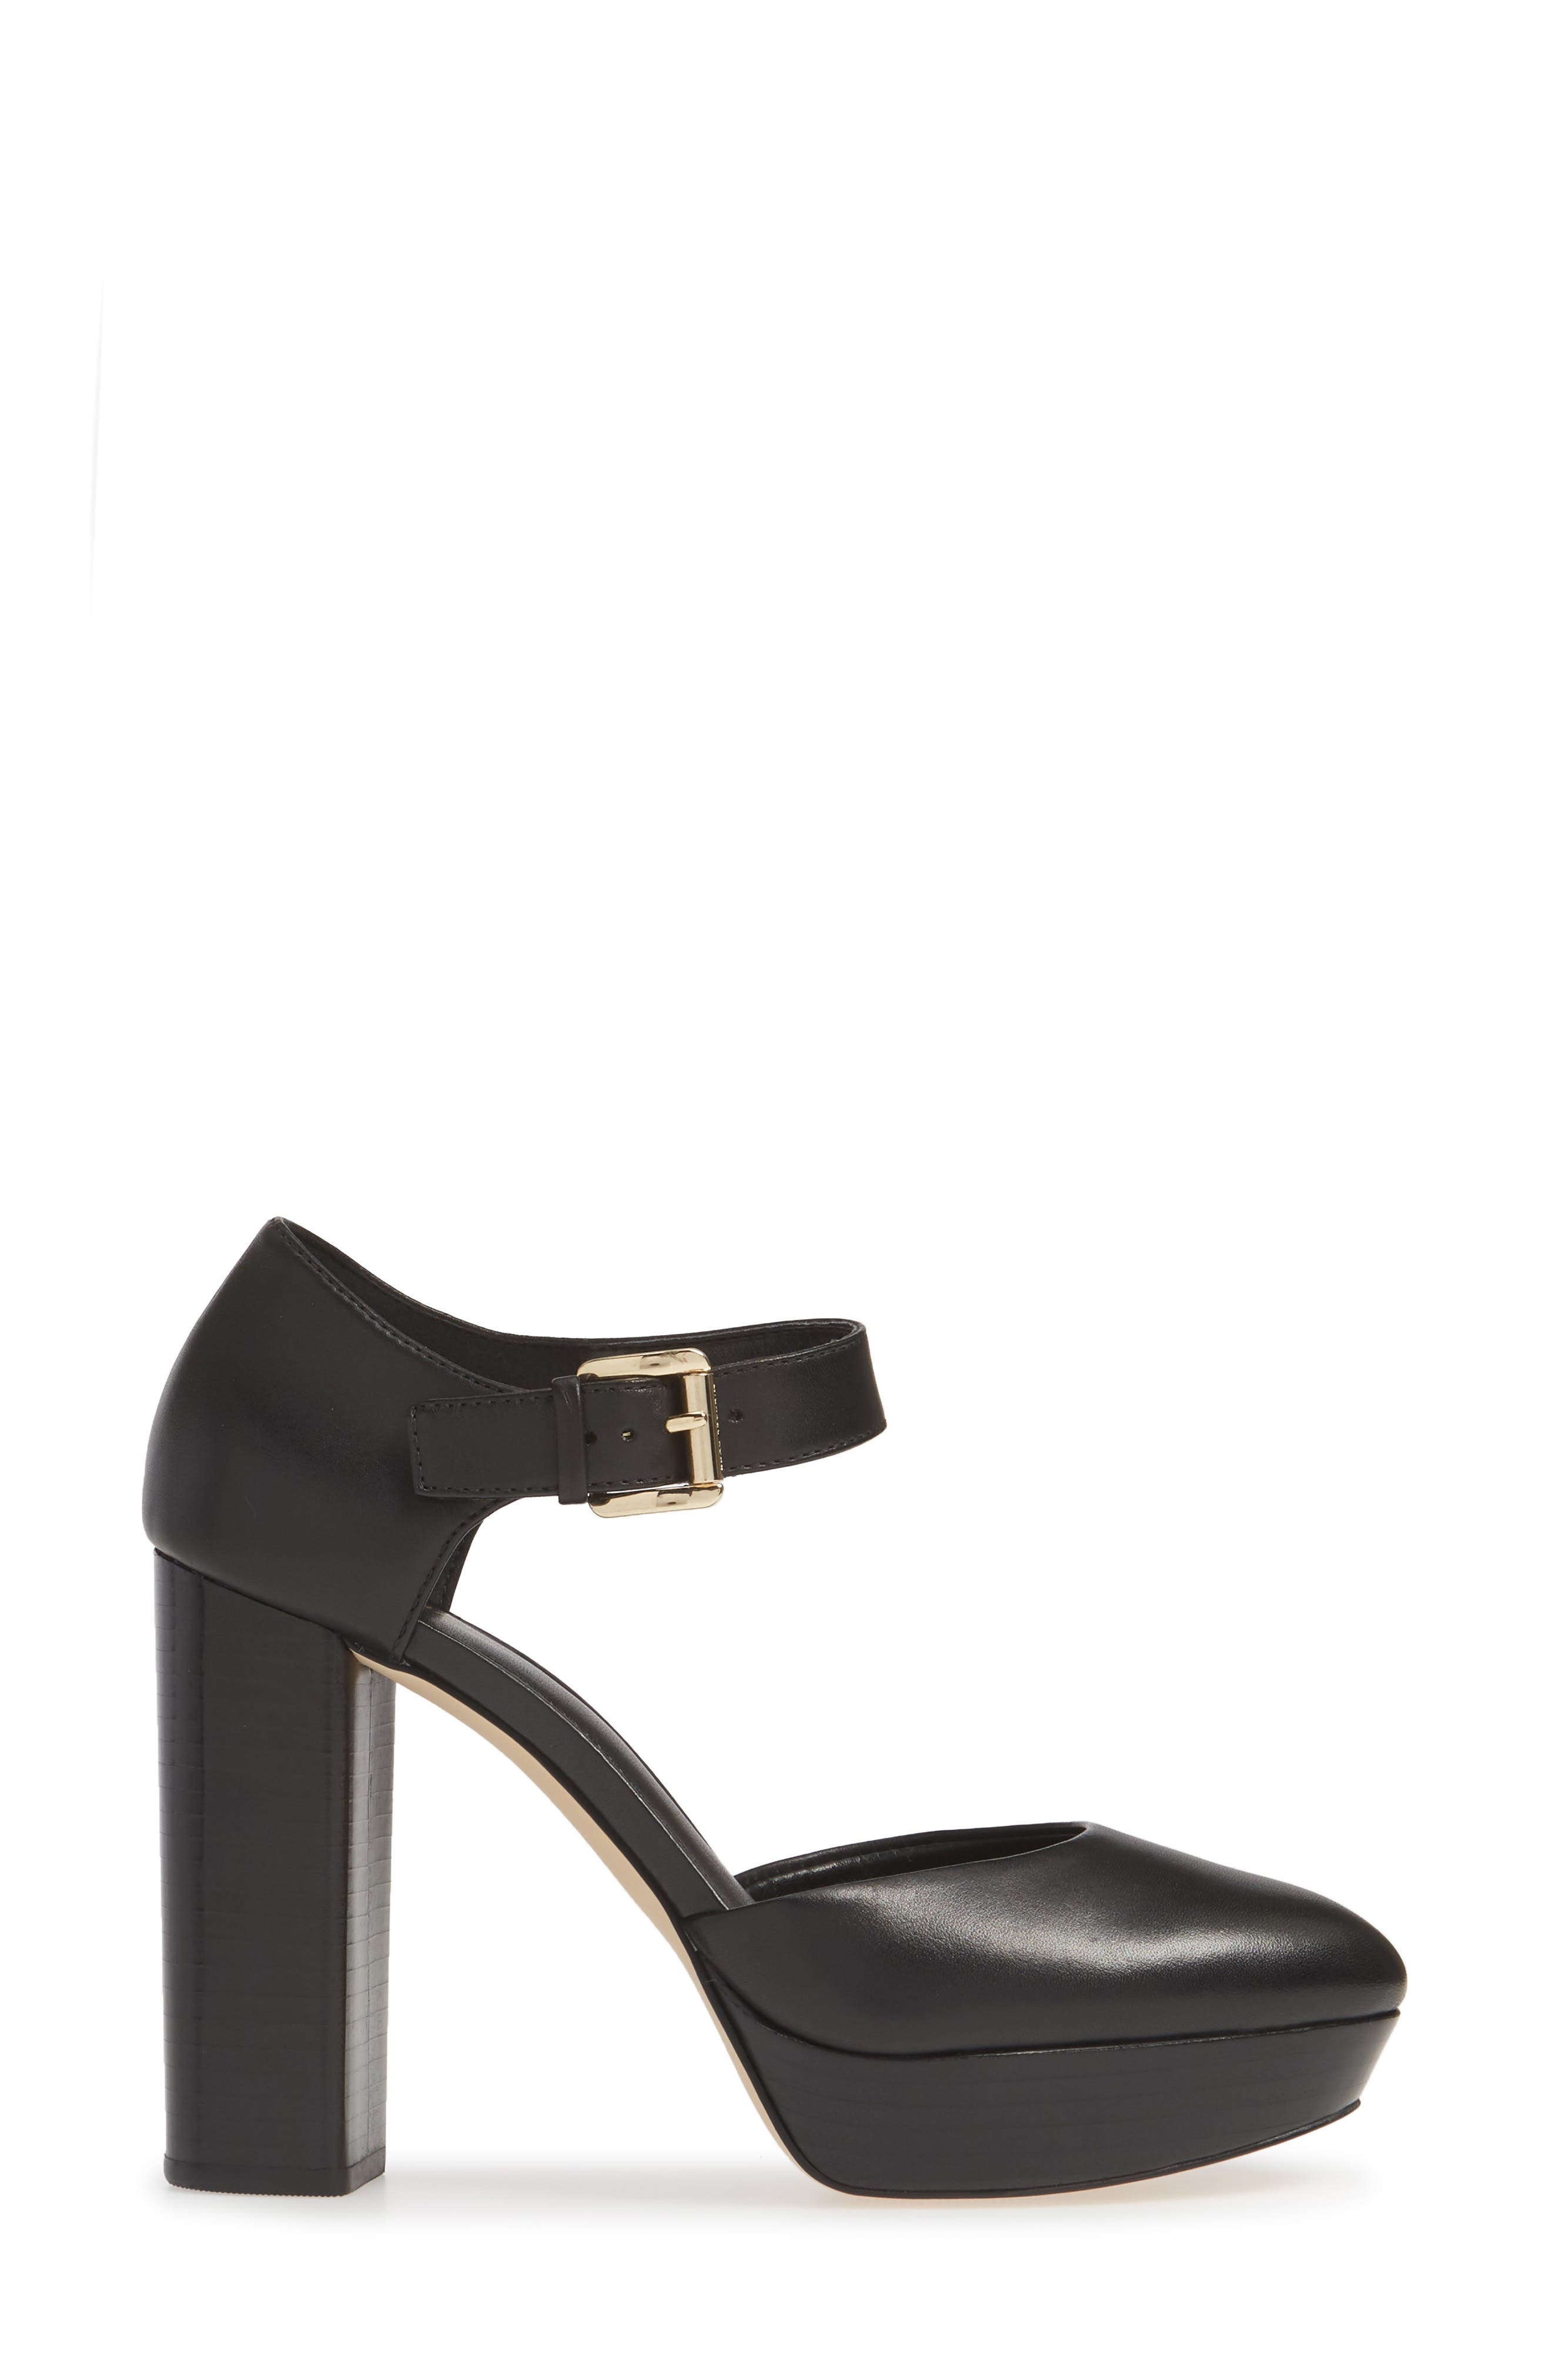 MICHAEL MICHAEL KORS, Platform Pump, Alternate thumbnail 3, color, BLACK VACHETTA LEATHER